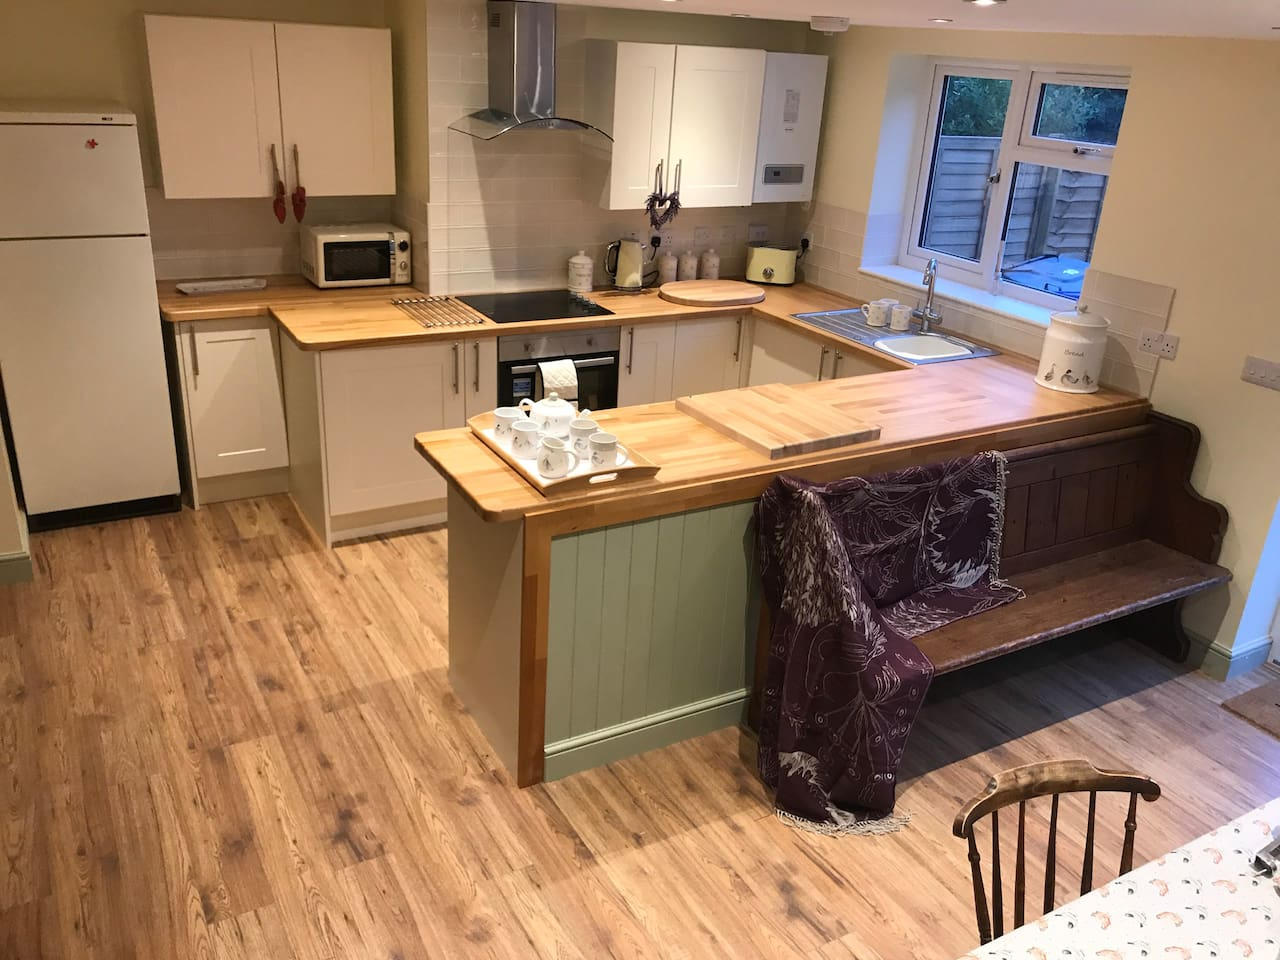 This is the newly installed kitchen combined with a dining area to seat 8 (using an old oak table, chairs & pew). Off of here is a utility area & hidden downstairs toilet!!